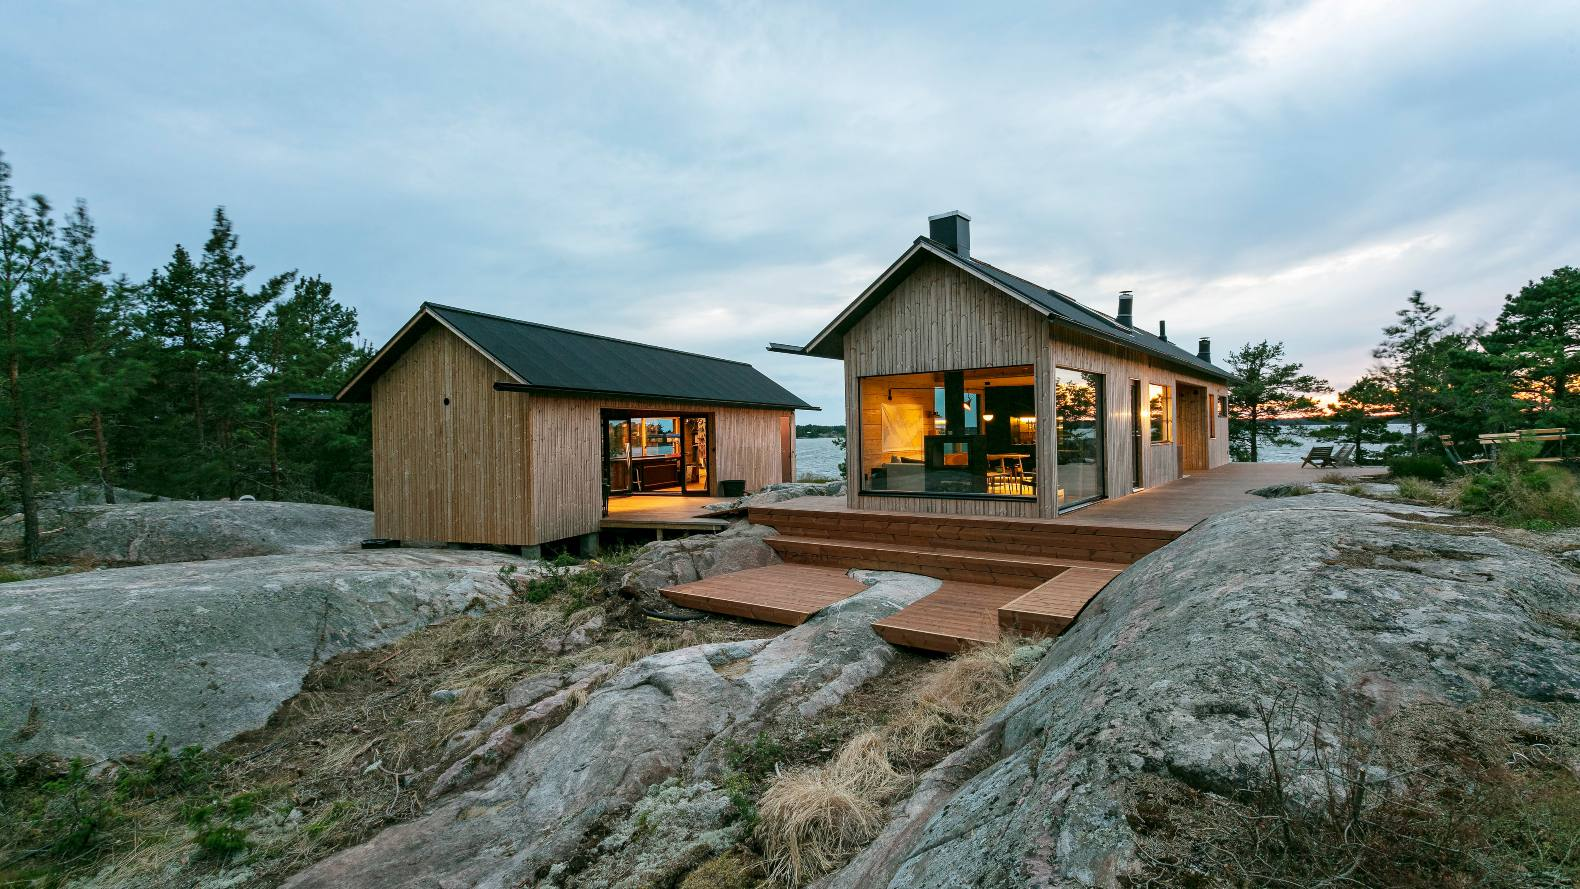 Two beautiful, self-sustaining tiny cabins rest on a remote island